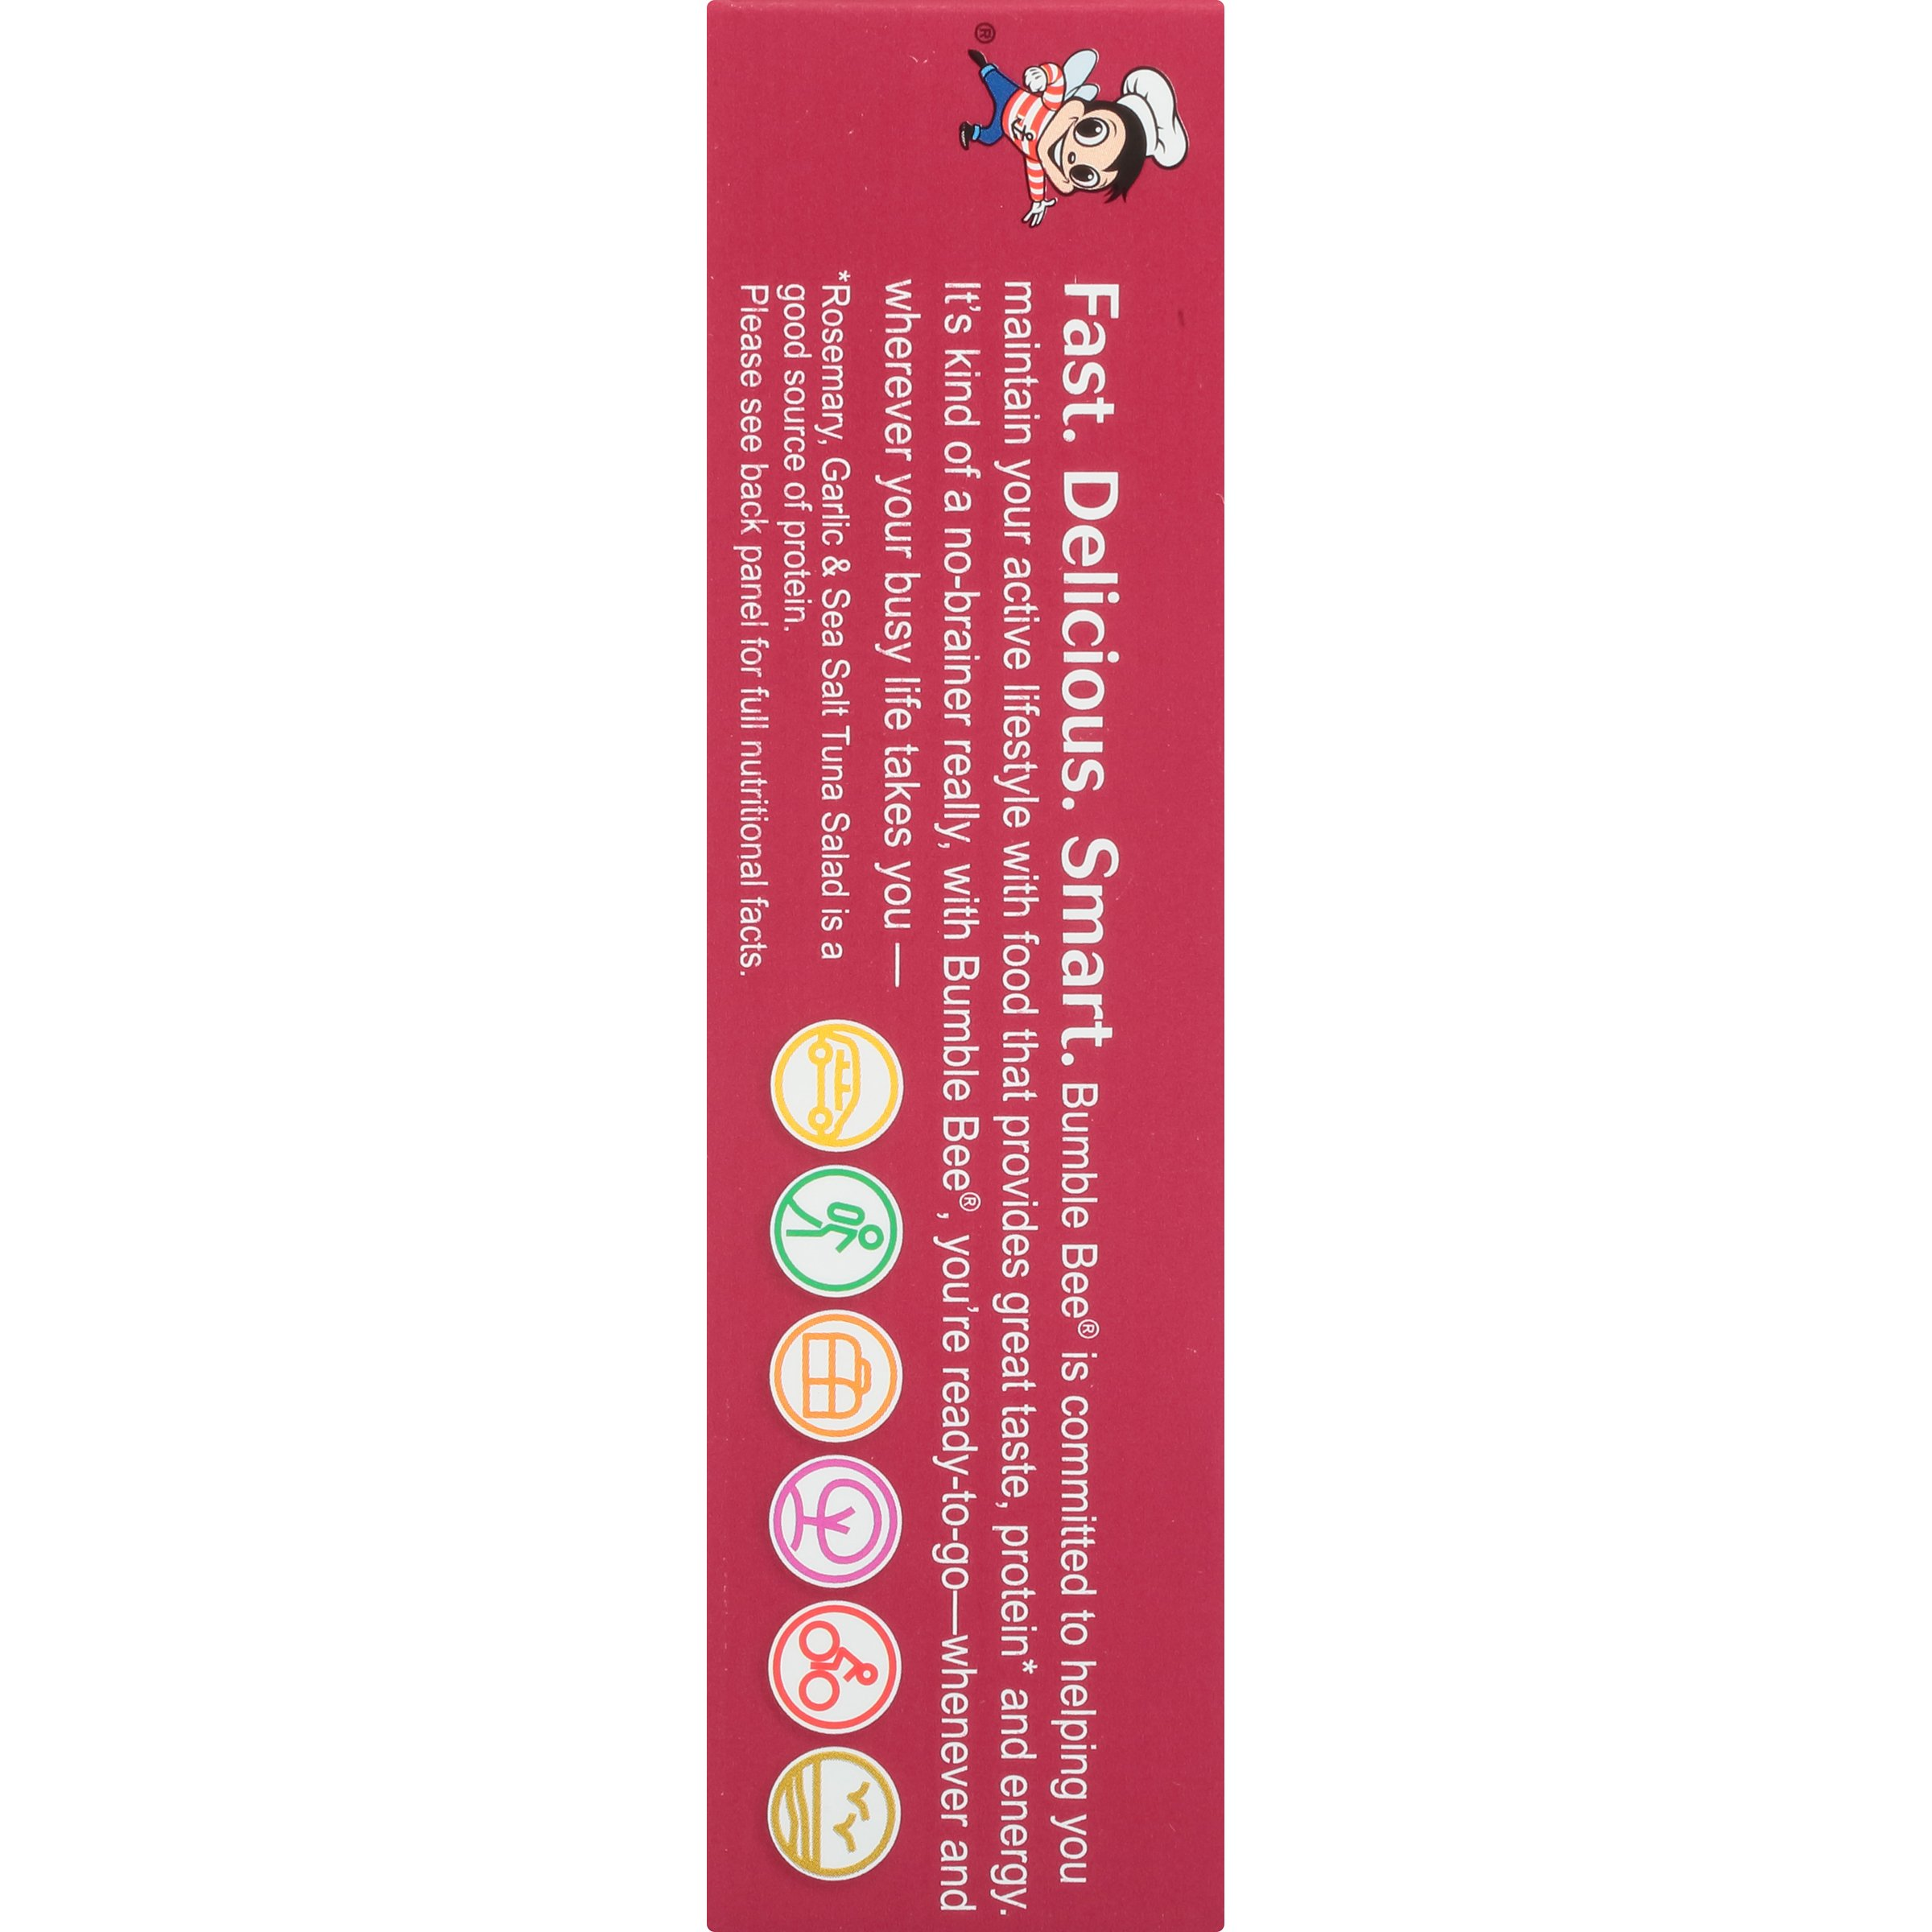 Bumble Bee Snack On The Run Crackers Kit, Rosemary, Garlic, & Sea Salt, 3.35 Ounce (Pack of 12)